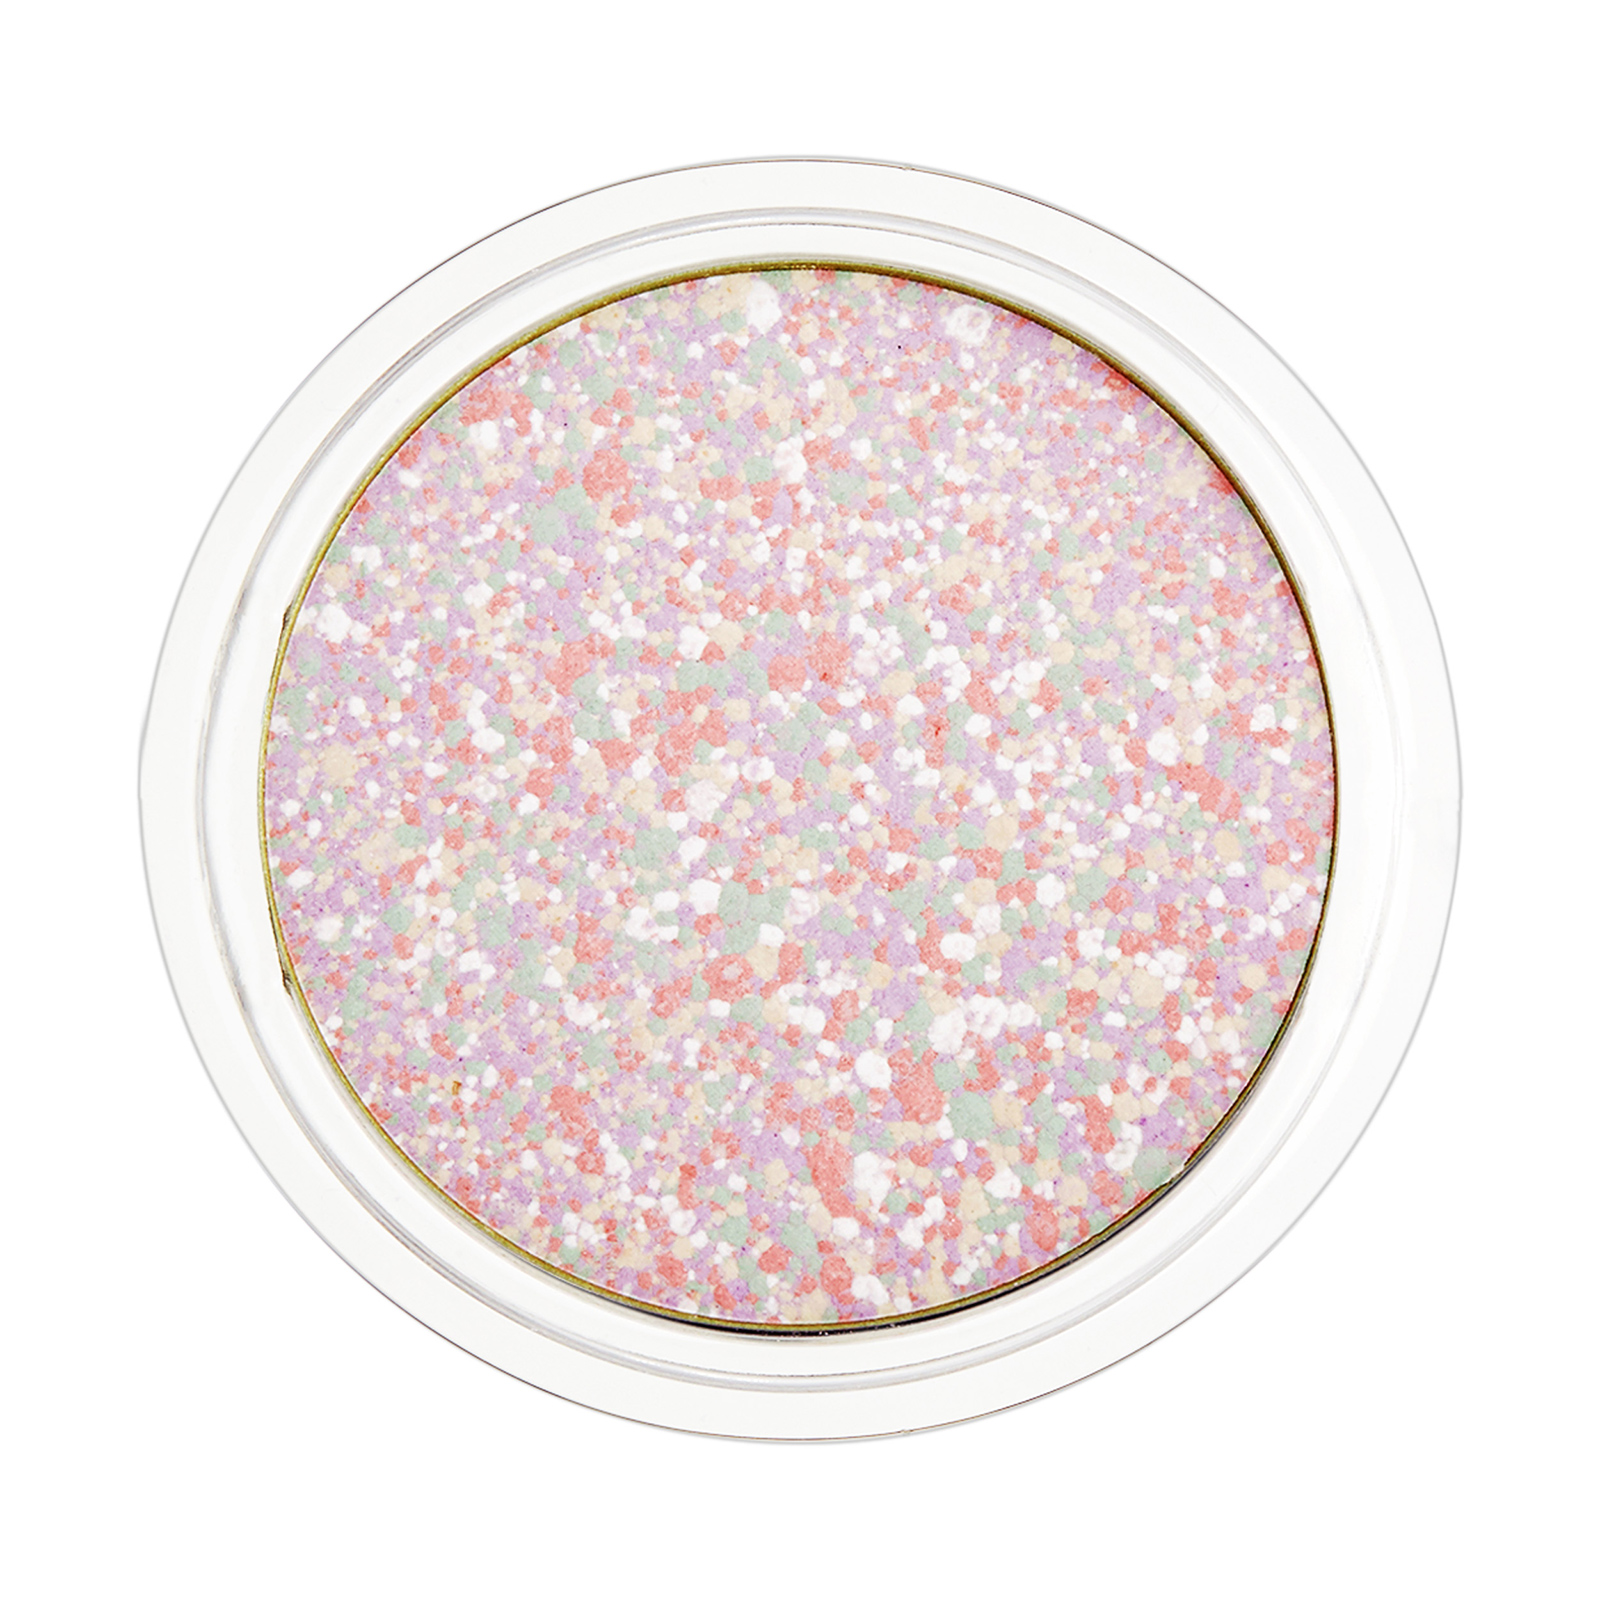 Guerlain Meteorites  Voyage Exceptional Compacted Pearls of Powder (Refill) #01 Mythic, 0.3oz, 11g from Cosme-De.com